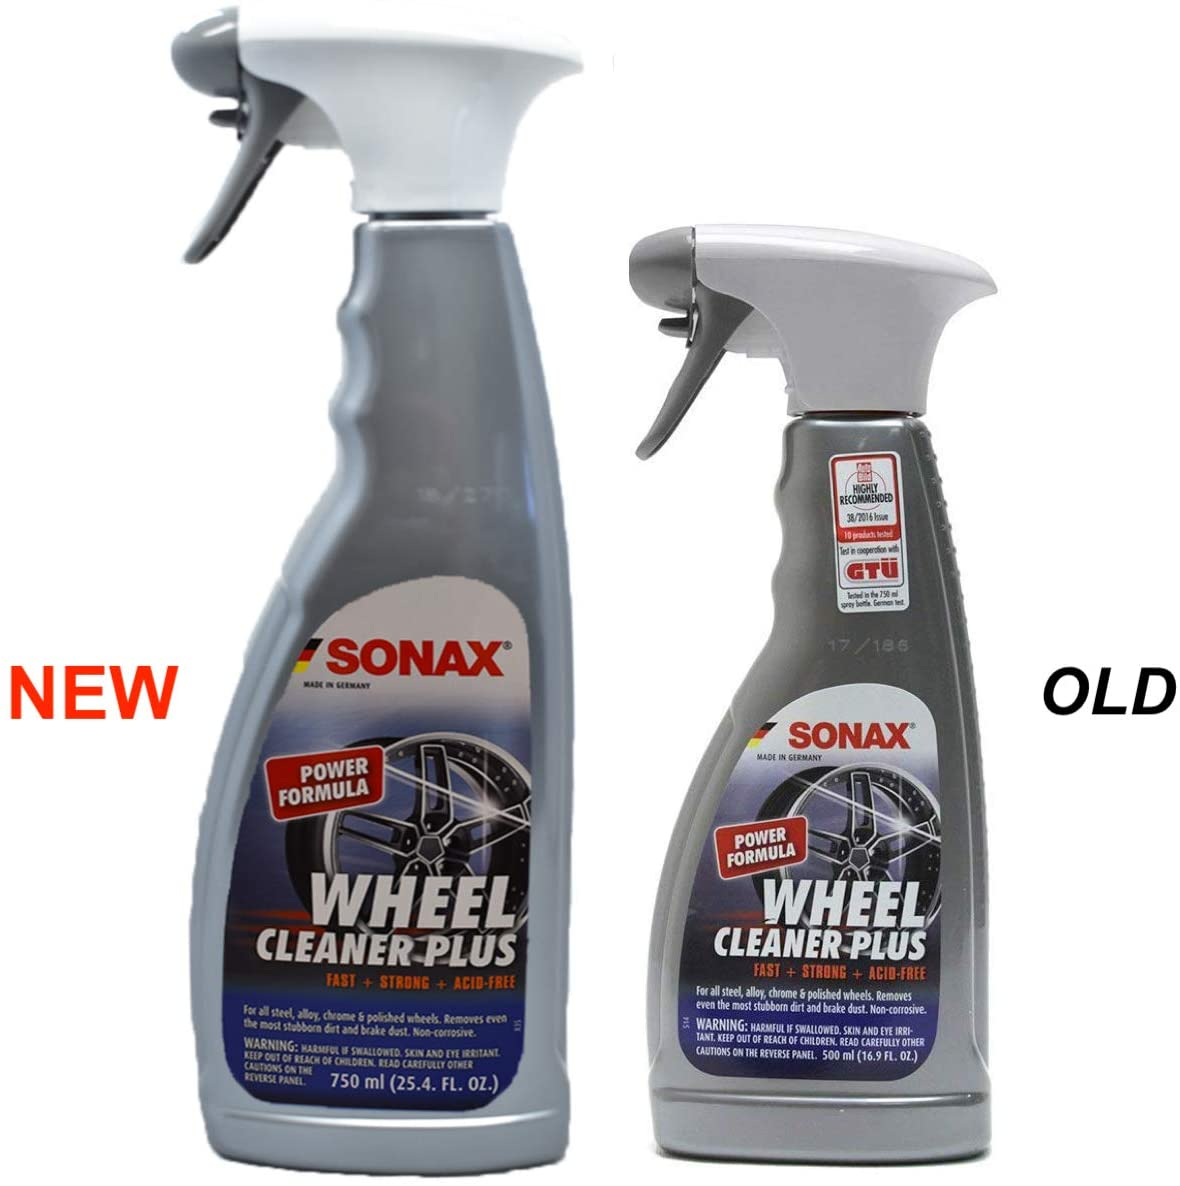 Load image into Gallery viewer, Sonax New (230400) Wheel Cleaner Plus - 2 Pack